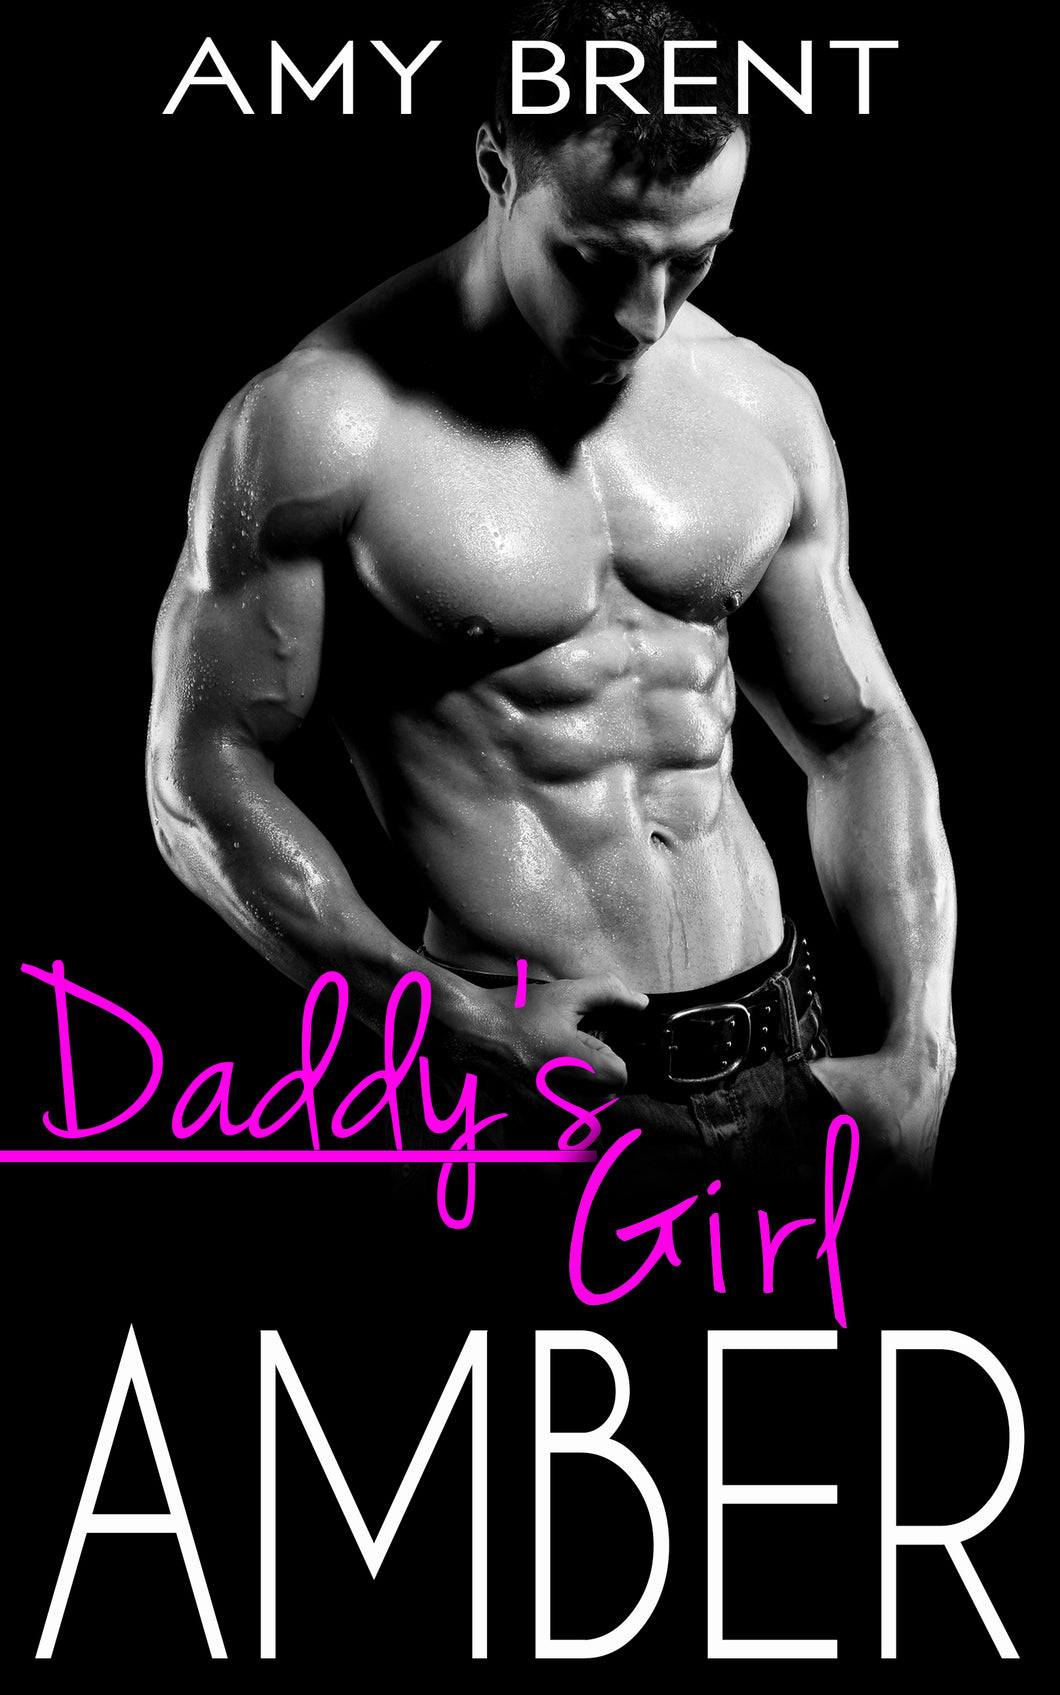 Daddy's Girl (Amber)